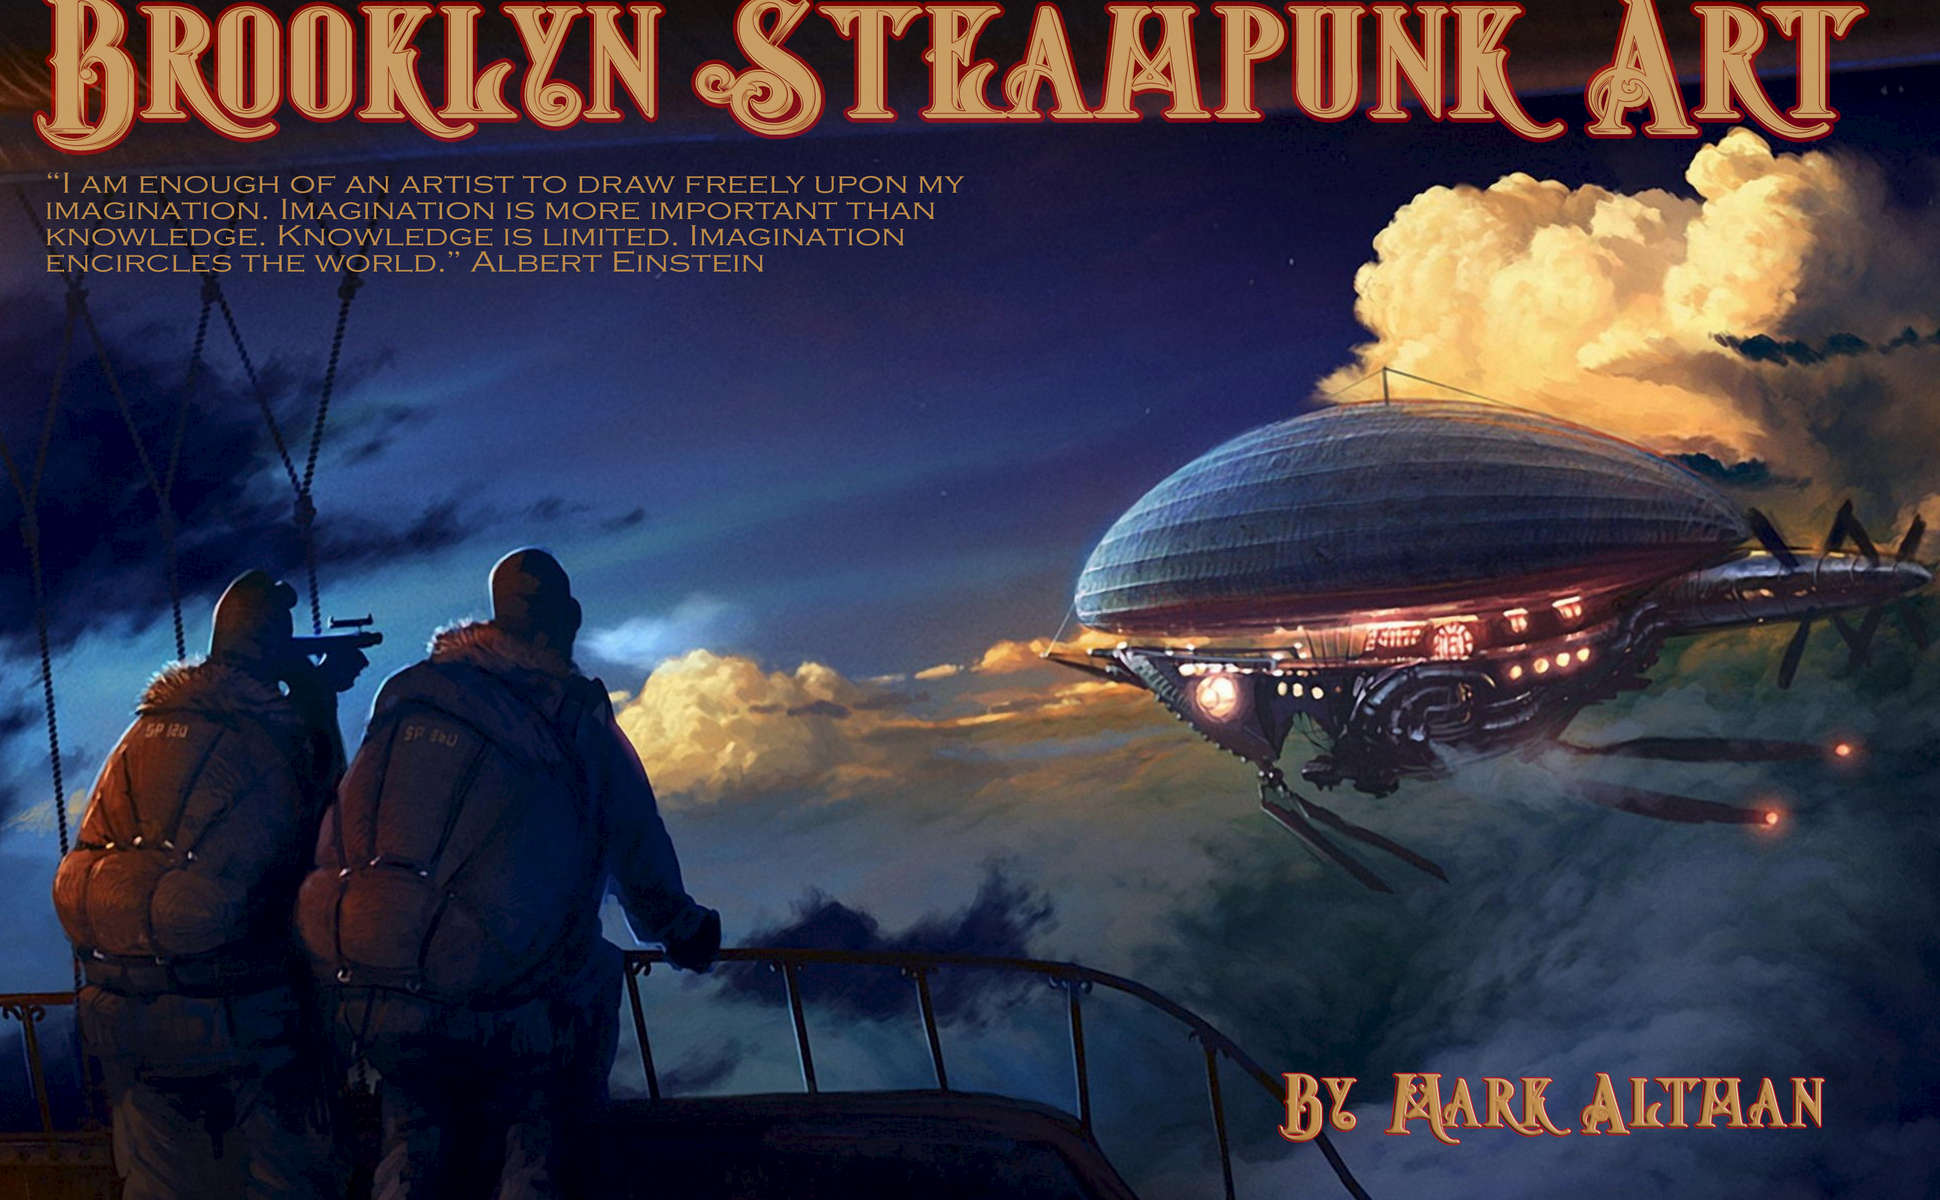 Brooklyn-steampunk-art-1